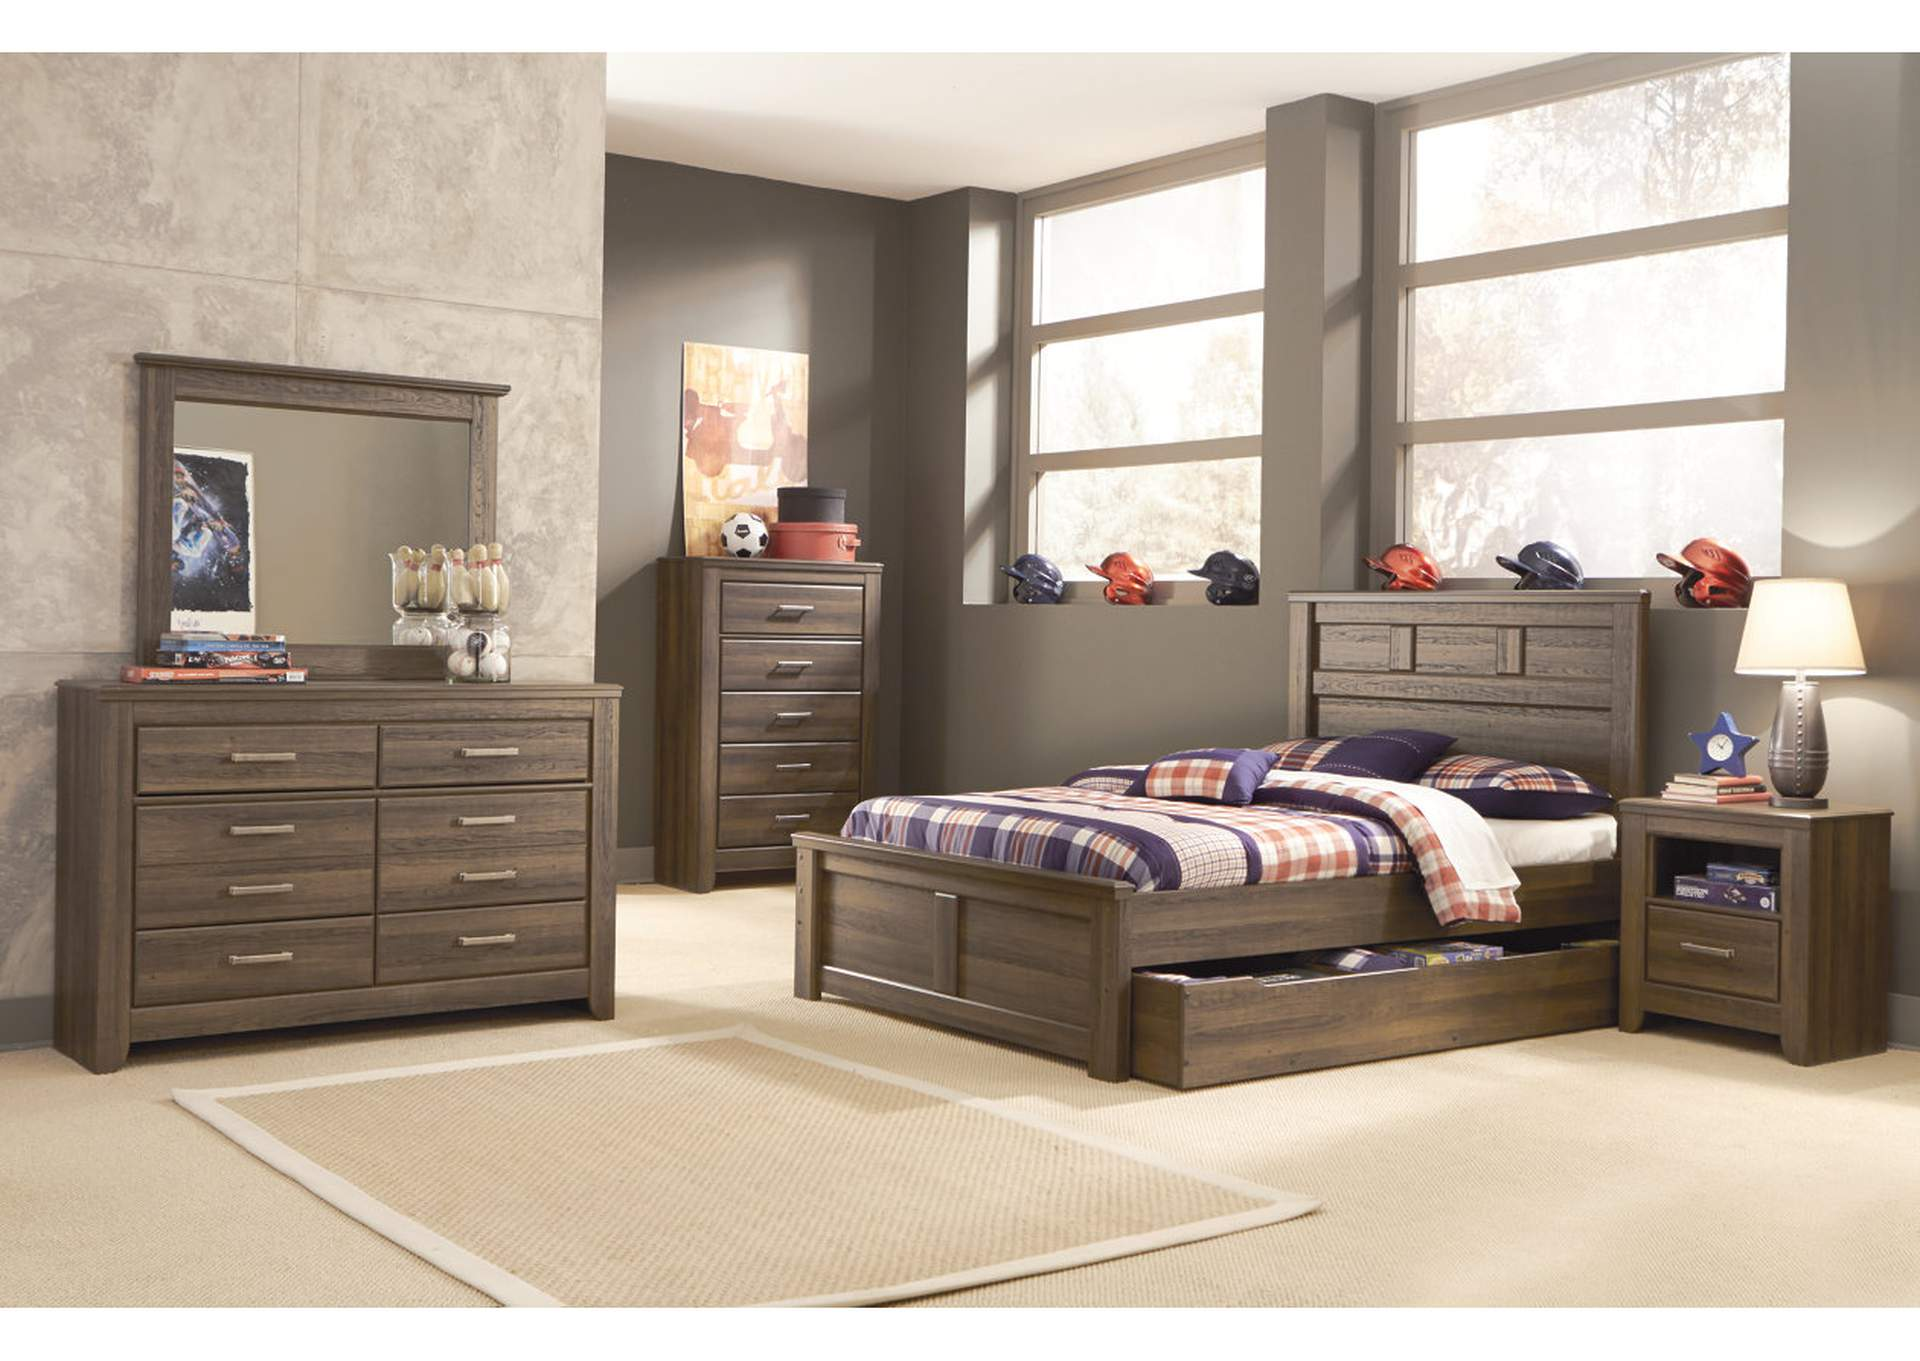 Juararo Full Panel Storage Bed w/Dresser, Mirror, Chest & 1 Drawer Nightstand,Signature Design By Ashley